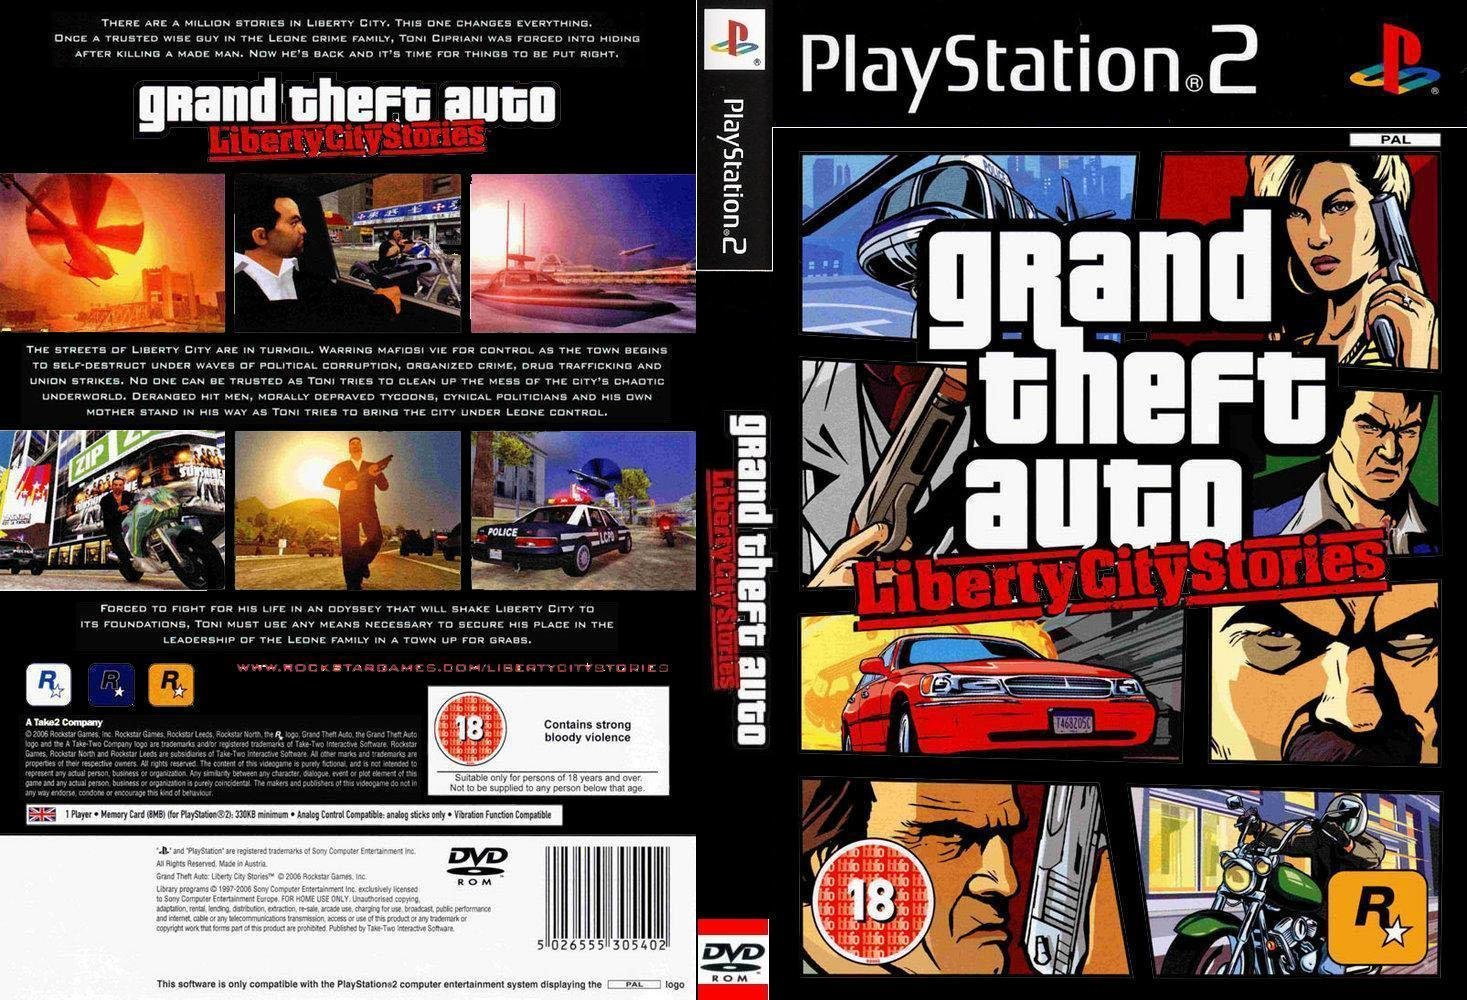 Grand theft auto liberty city stories dvd custom pal front